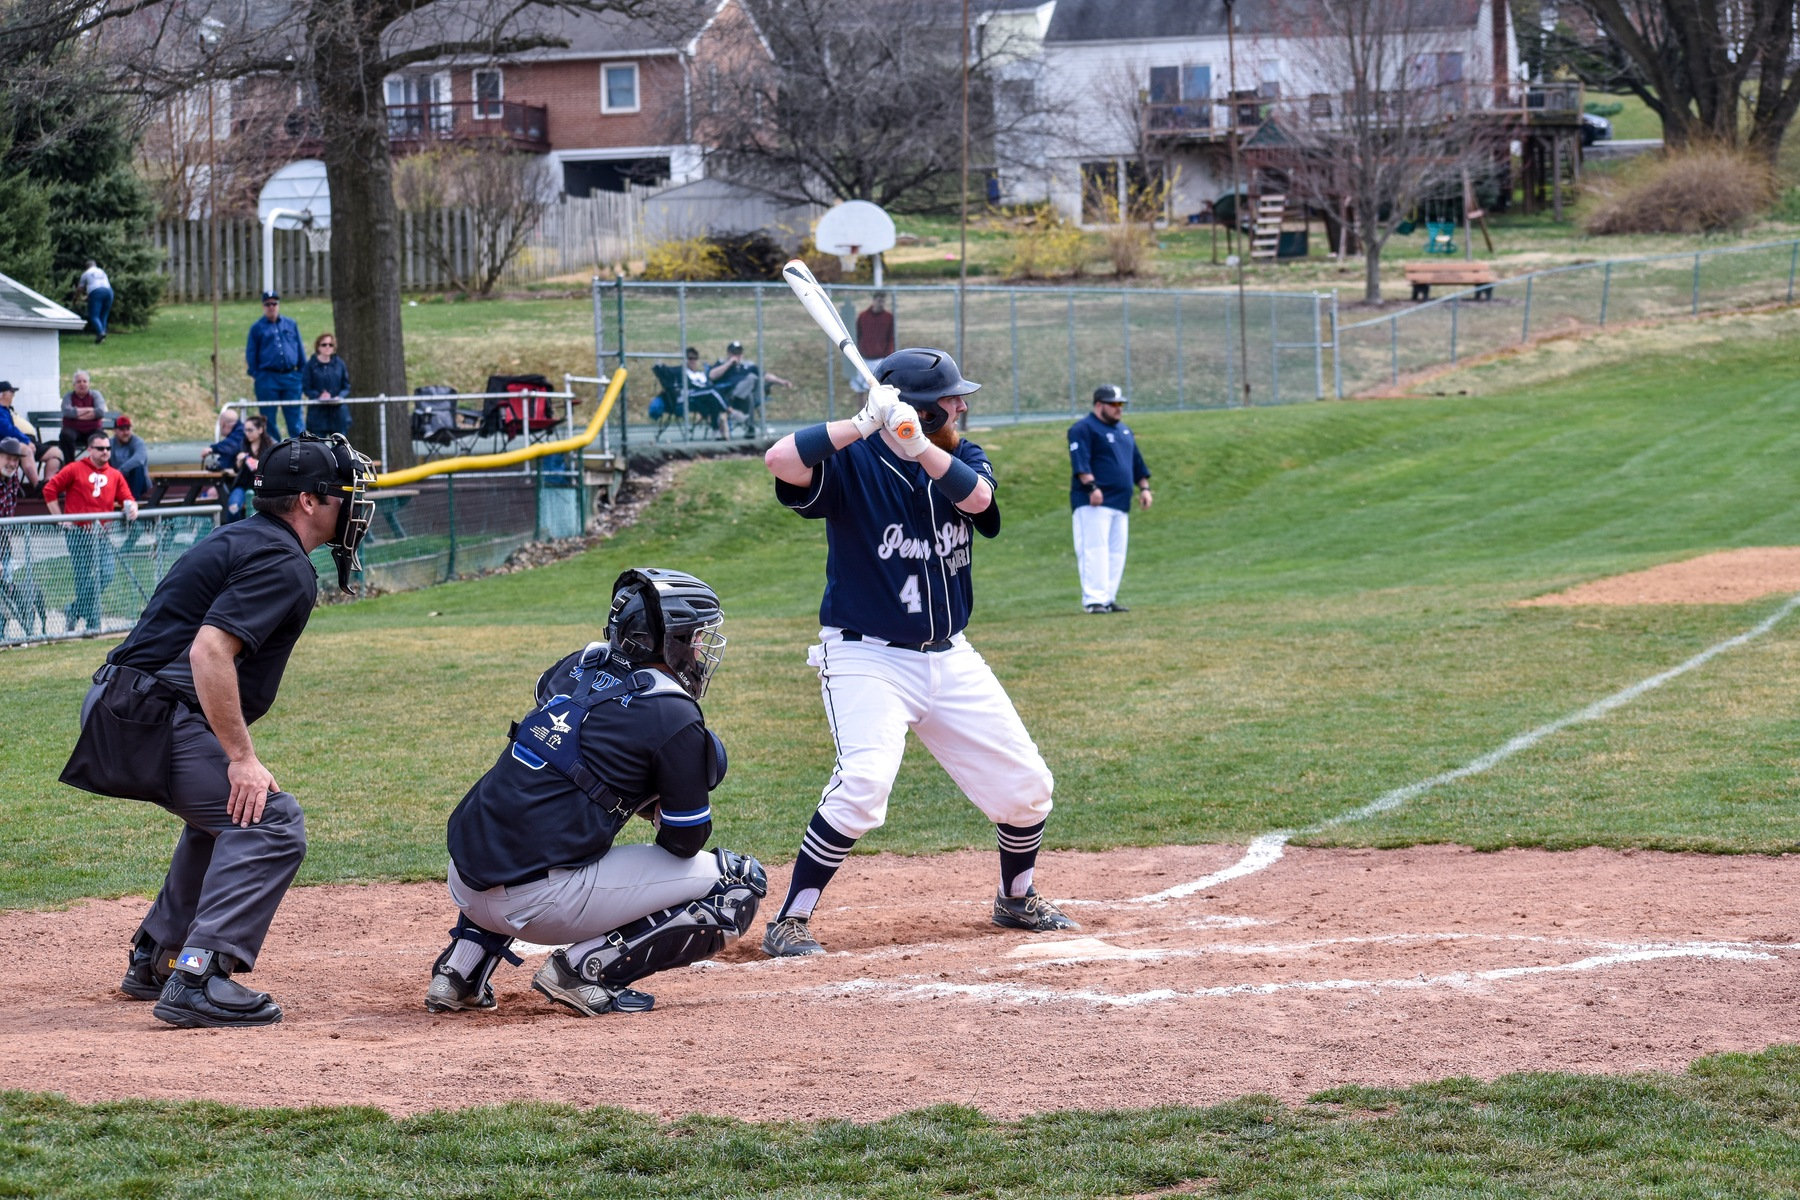 Brady Lefever hit a solo home run in the 12-2 victory for Penn State York.